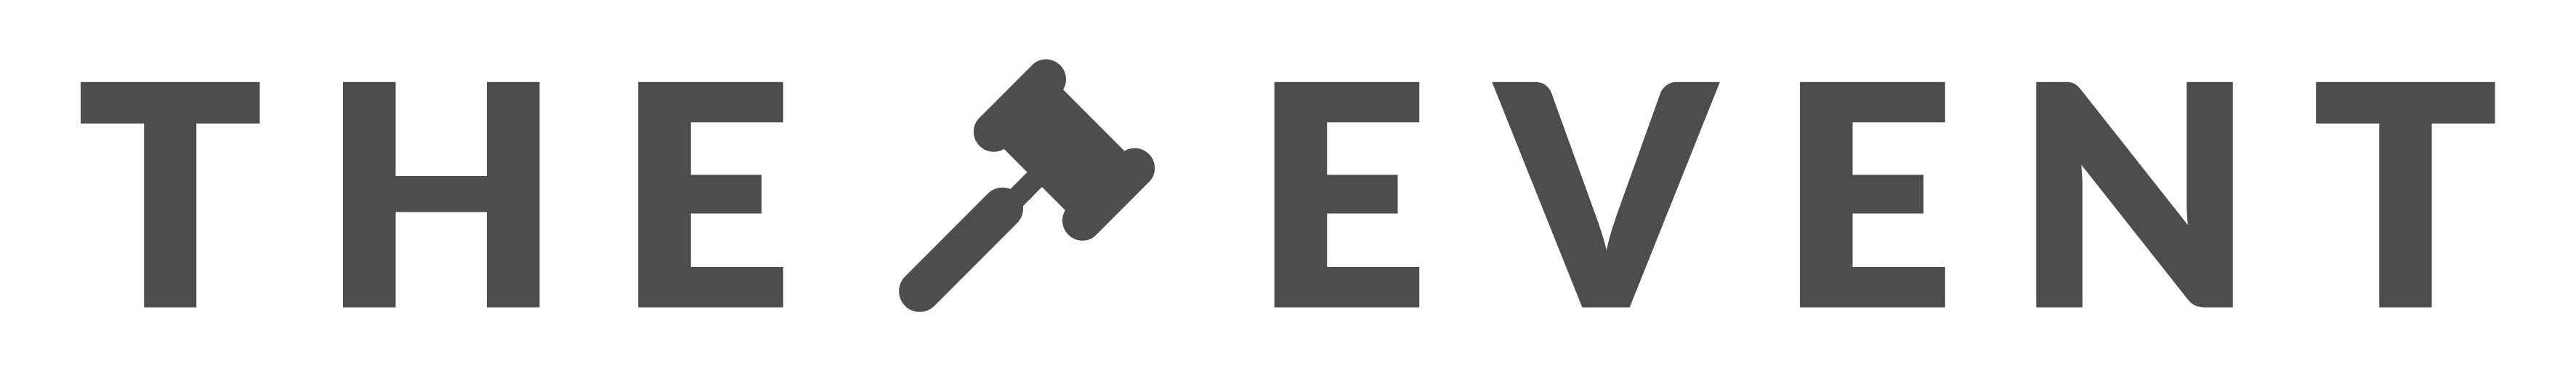 TheAuctionEvent-Grey-Main-Logo